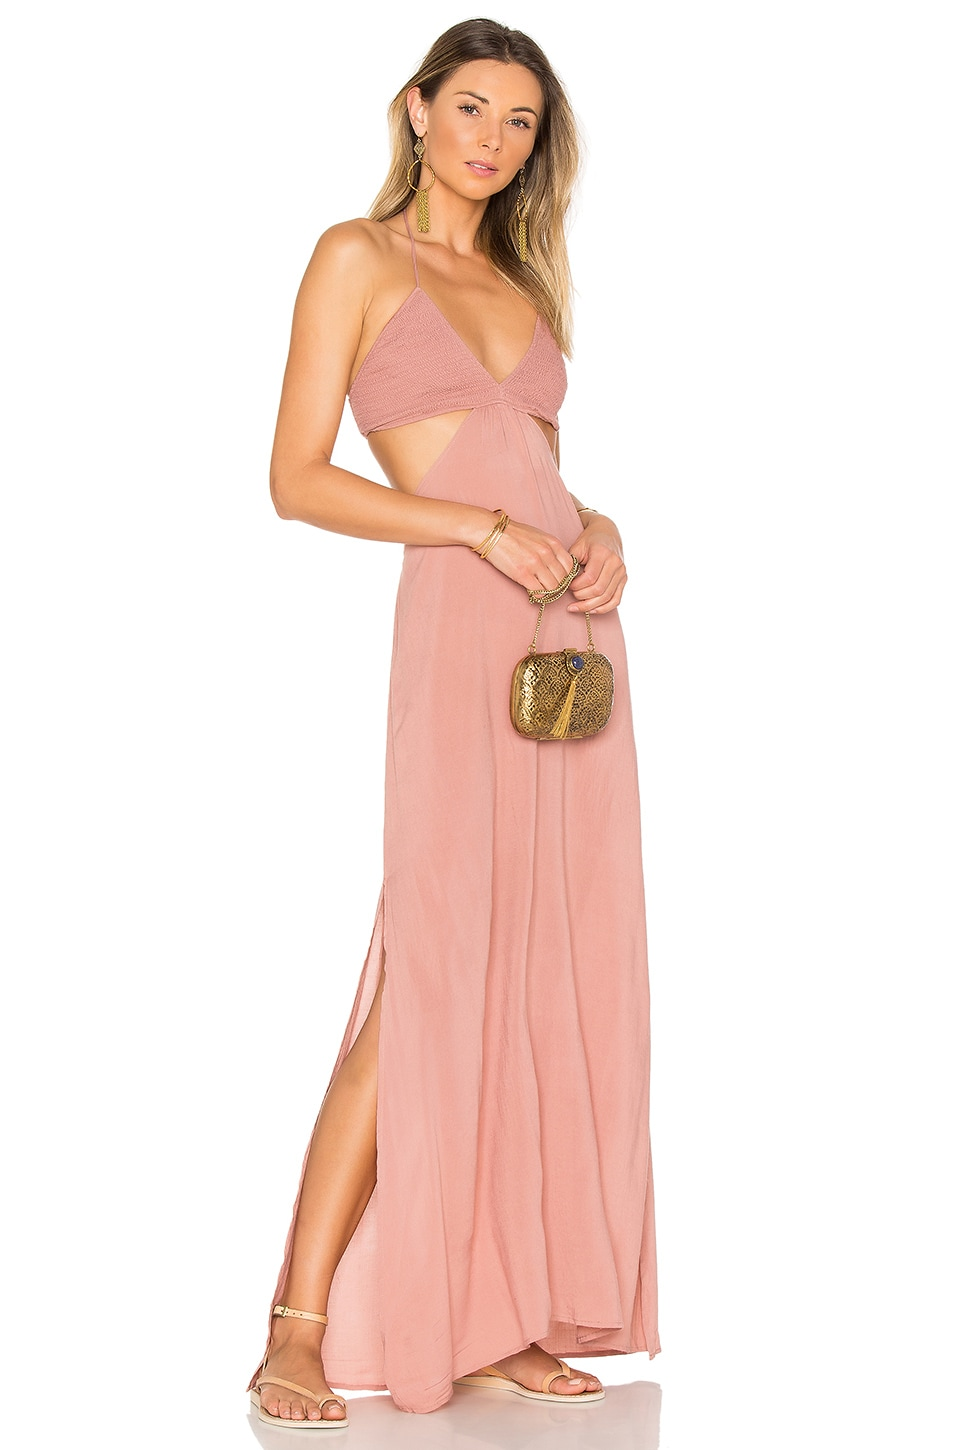 Indah Blaze Cutaway Maxi Dress in Dusty Rose